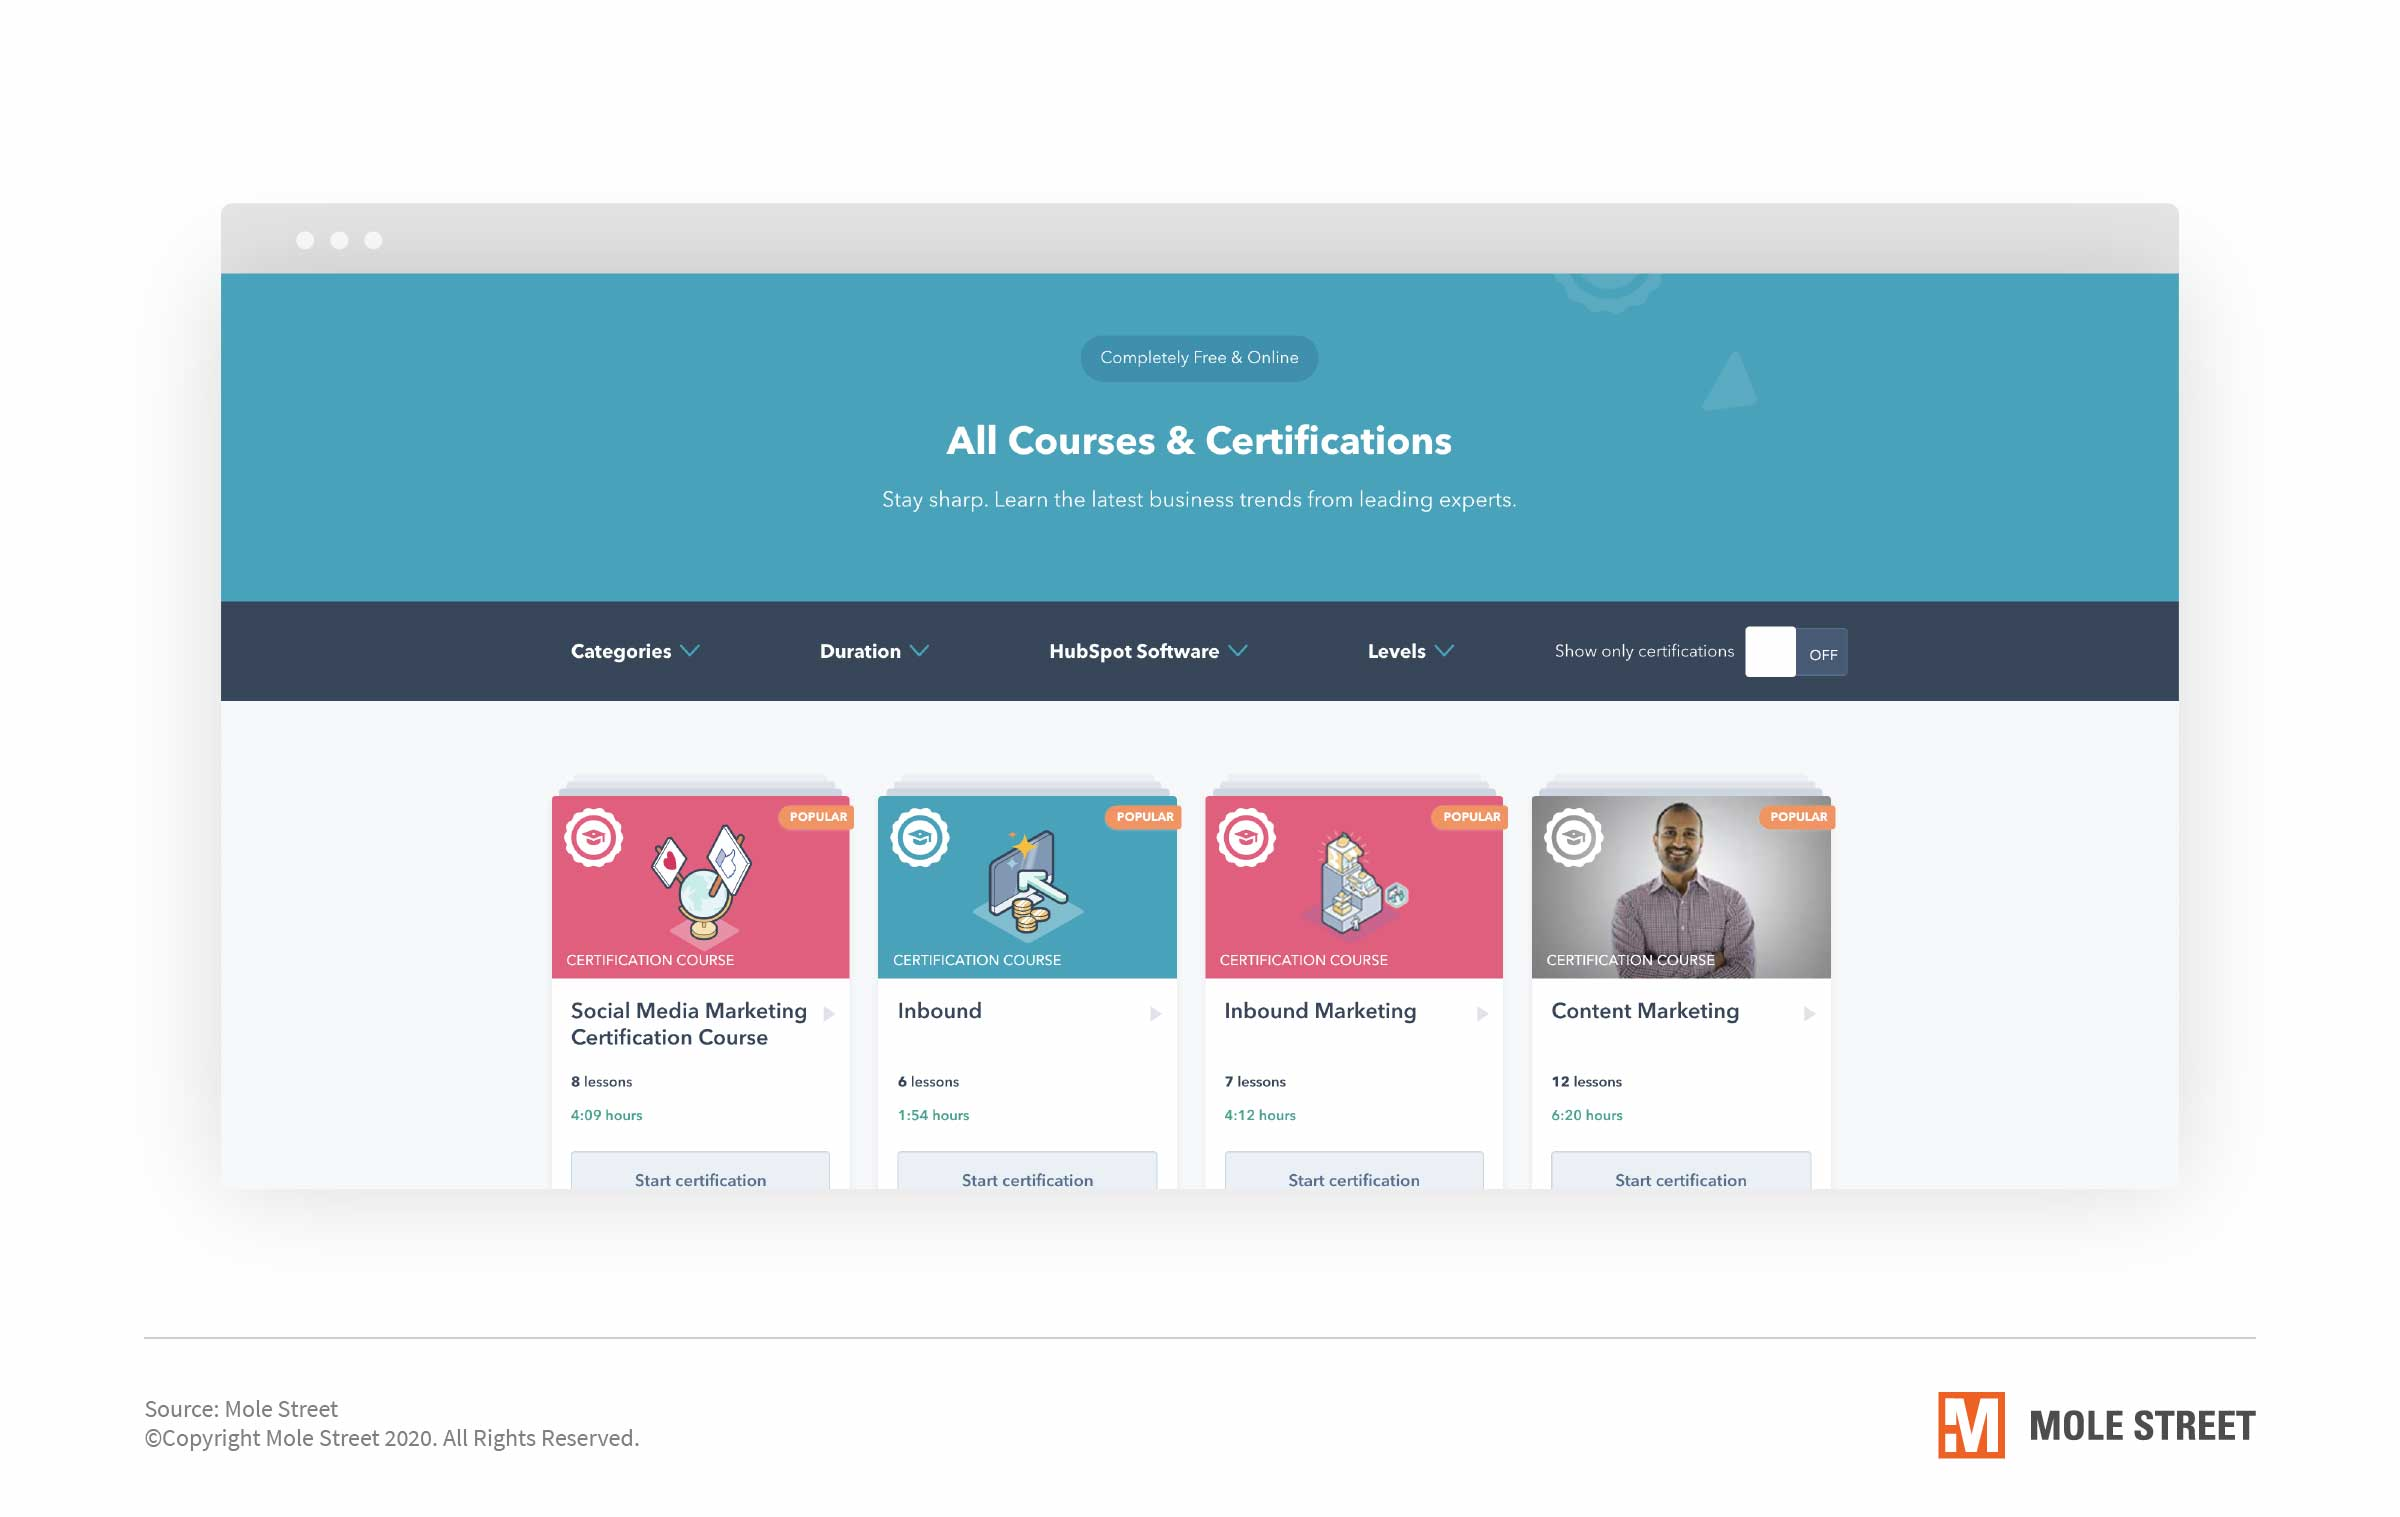 MS-Agency-Blog-How-the-HubSpot-Inbound-Marketing-Certification-Can-Boost-Your-Teams-Success-with-HubSpot-Oct-IMAGES-11